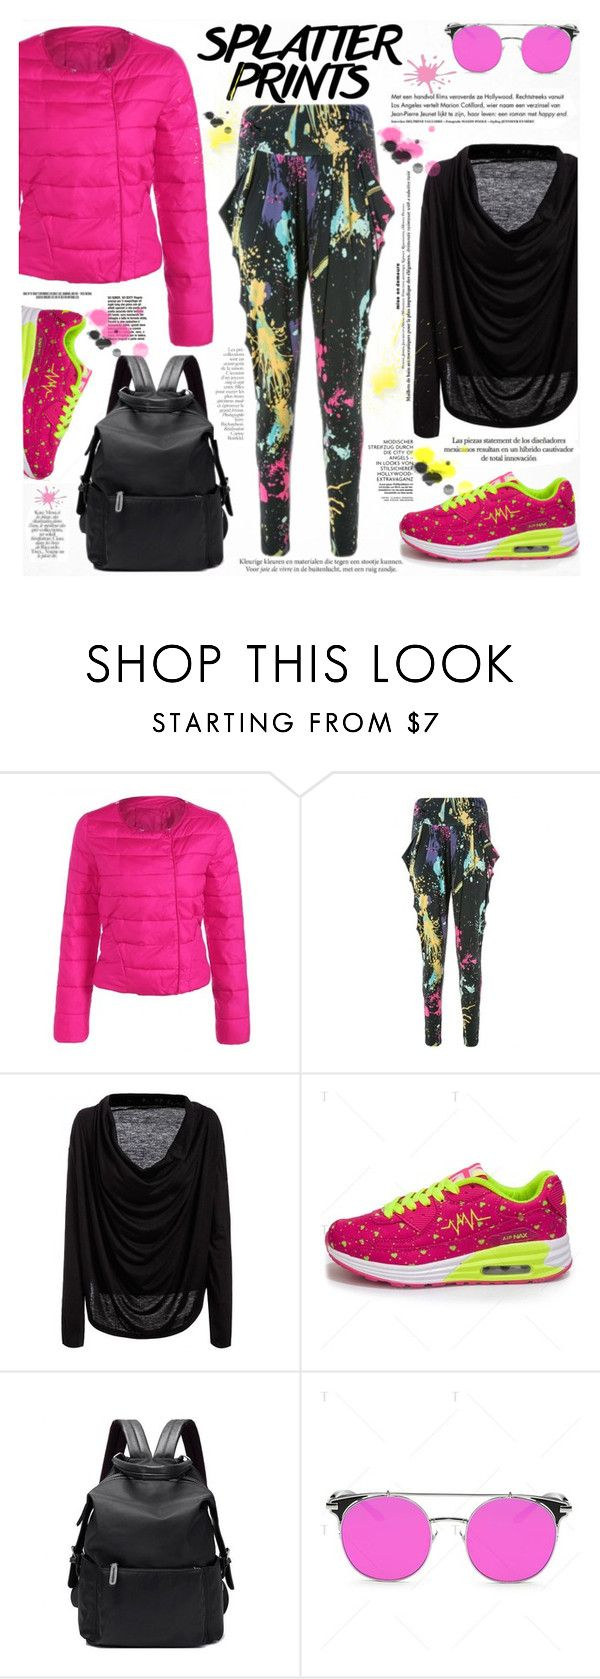 """Splatter Prints"" by katjuncica ❤ liked on Polyvore featuring Haute Hippie and By Terry"